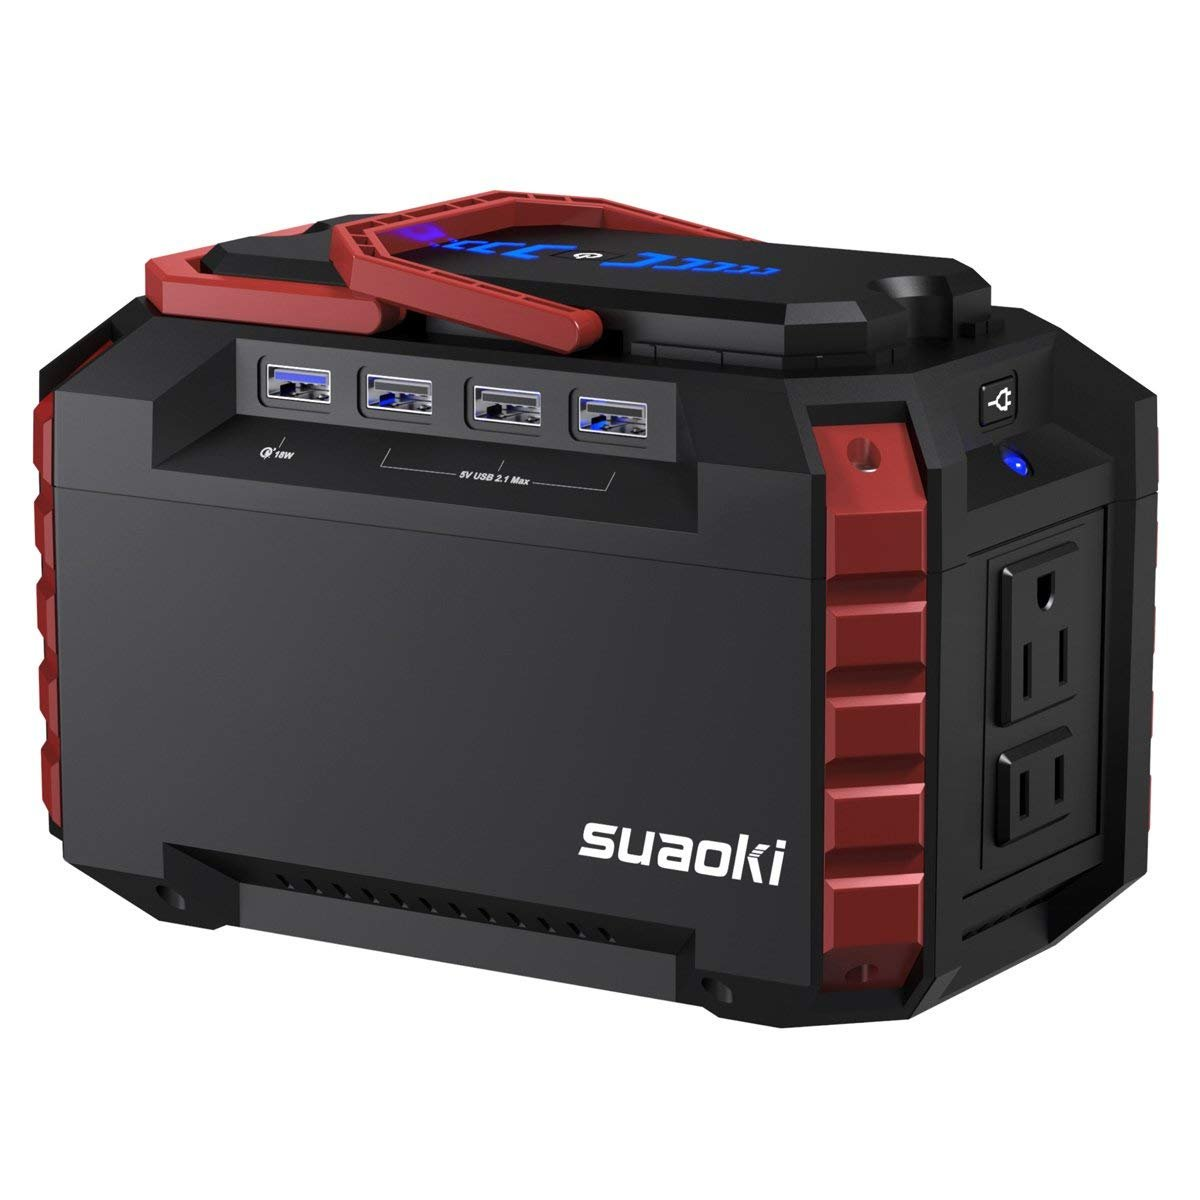 SUAOKI Portable Power Station 150Wh Quiet Gas Free Camping Generator QC3.0 UPS Lithium Power Supply Dual